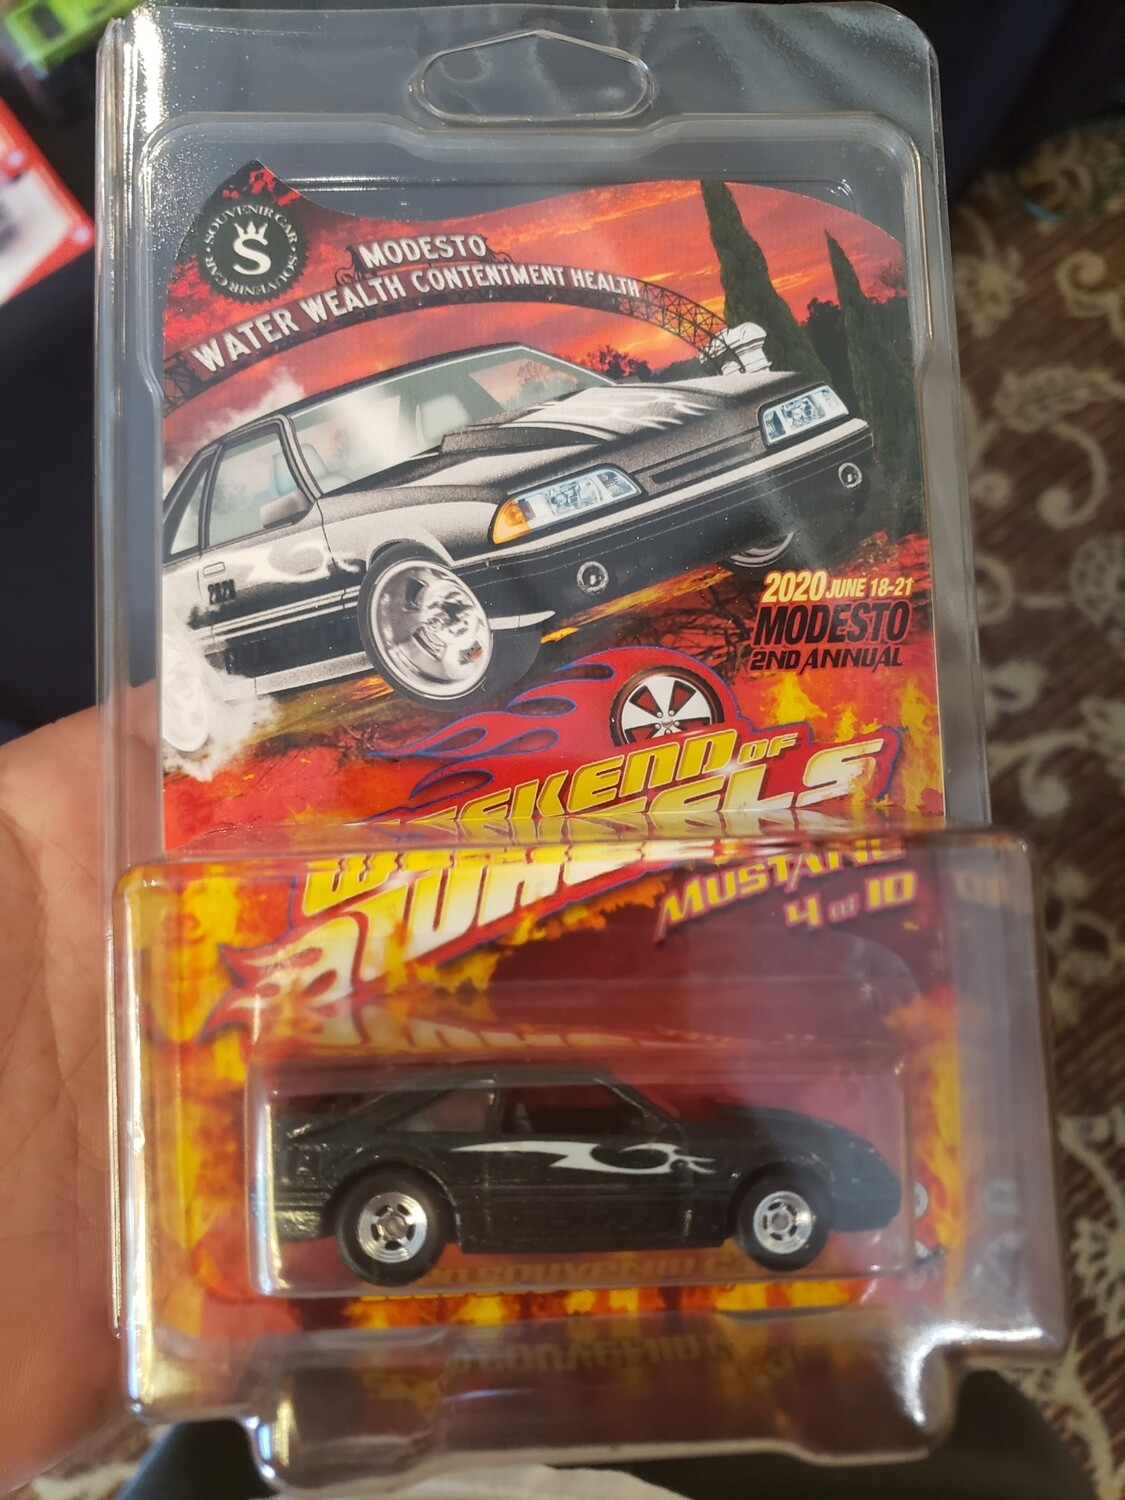 Weekend of Wheels Souvenir 92 Mustang 1 of 10